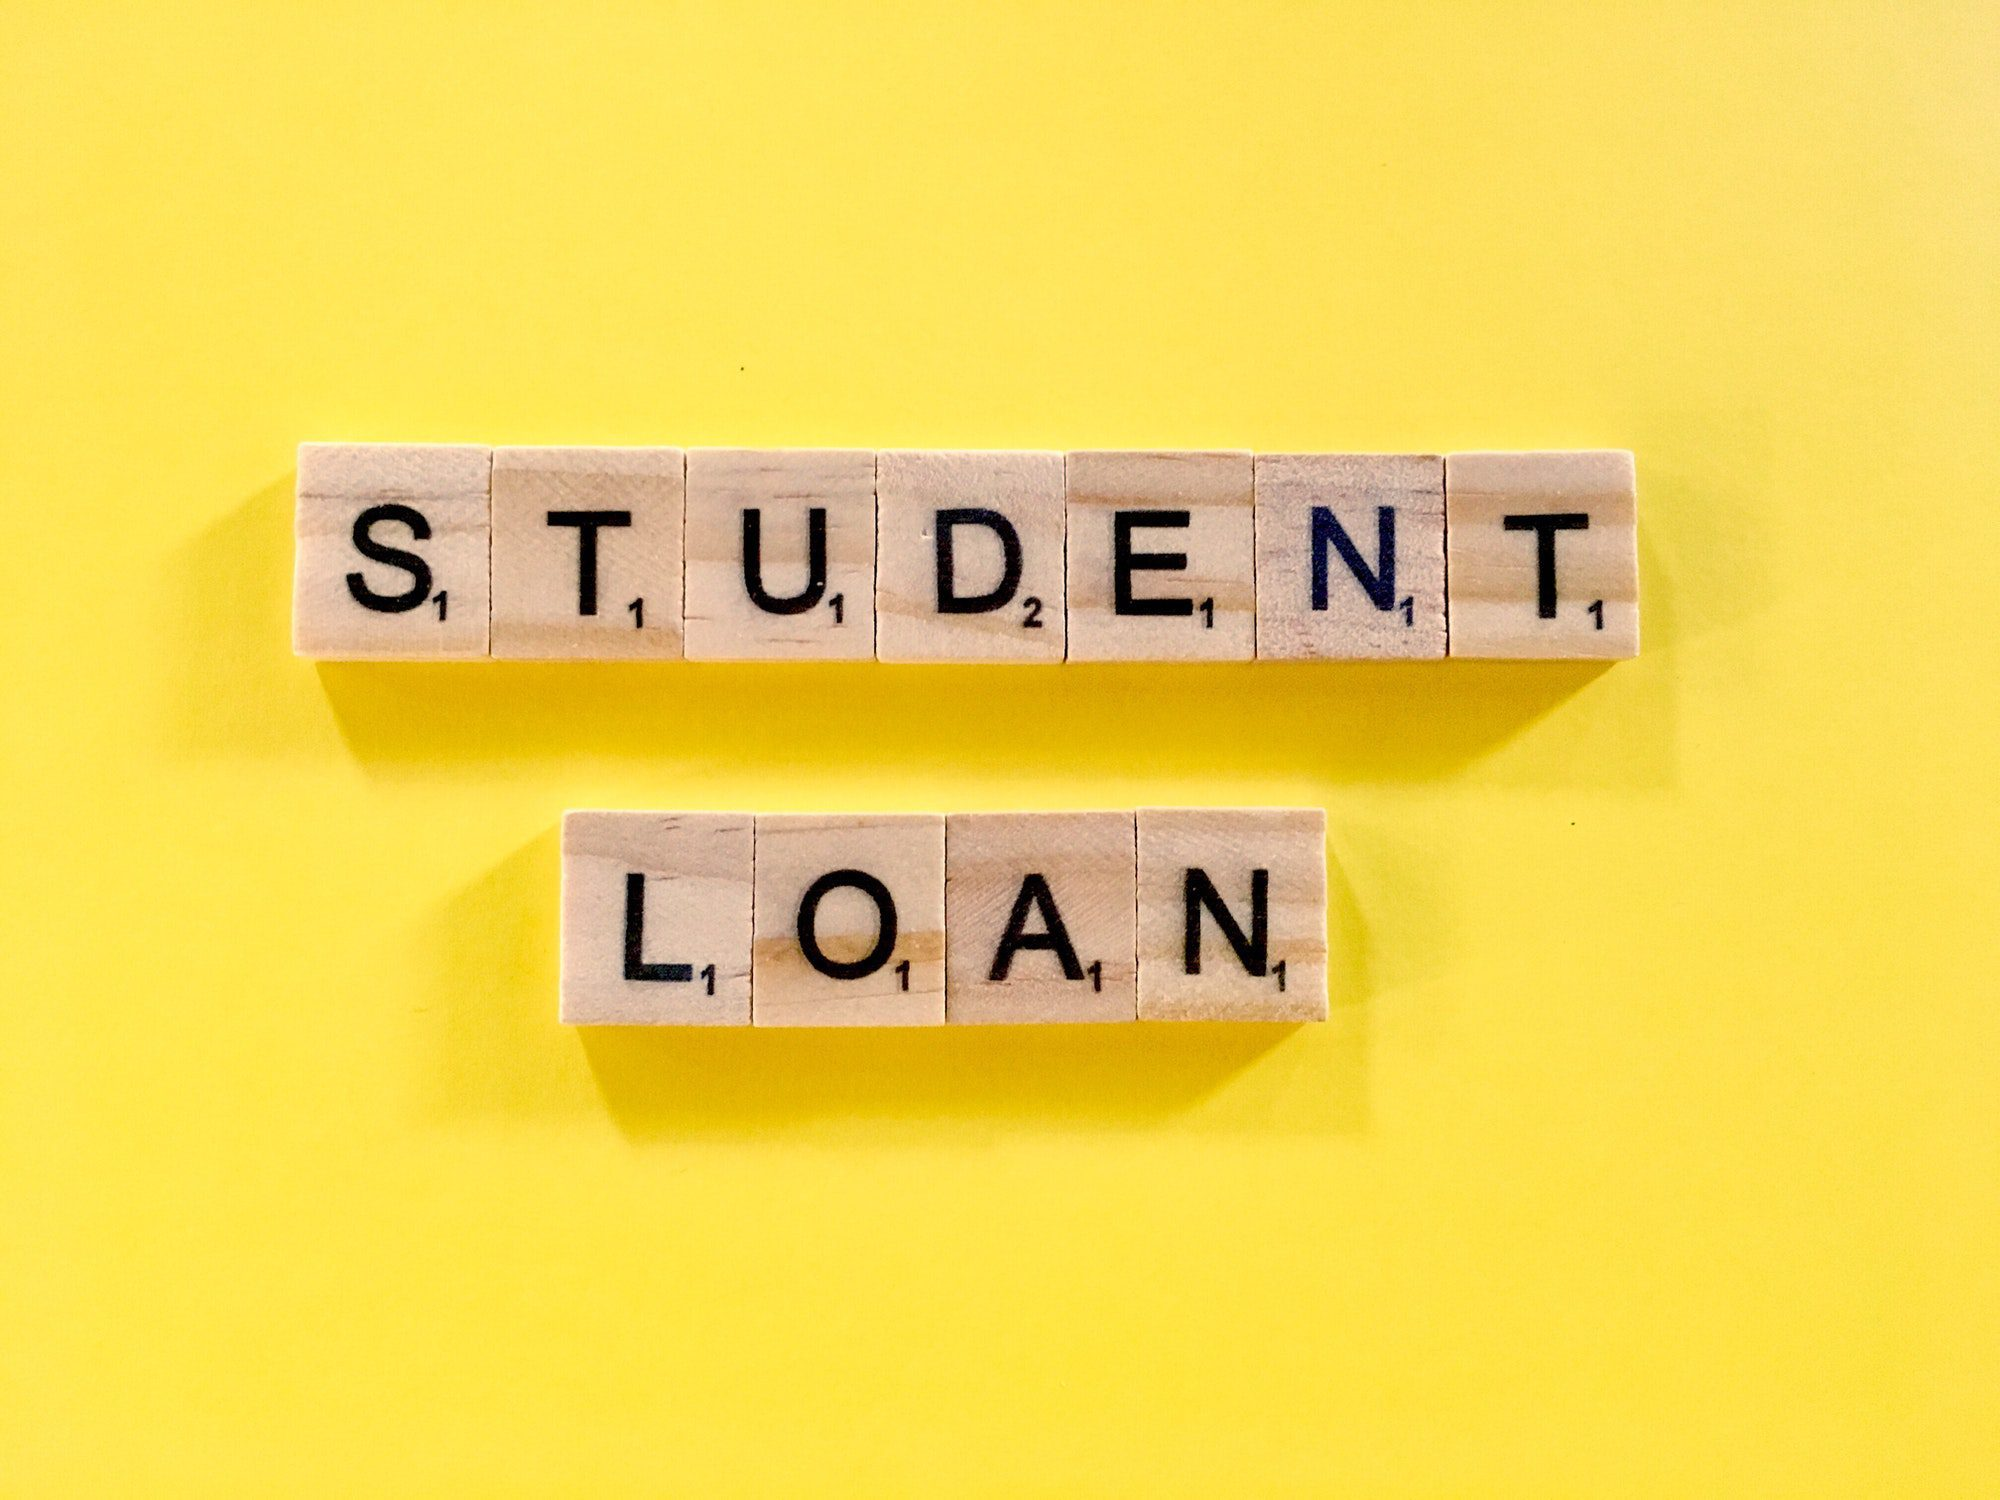 Blocks spelling student loan to show the lighter side of student loan debt for baby boomers.